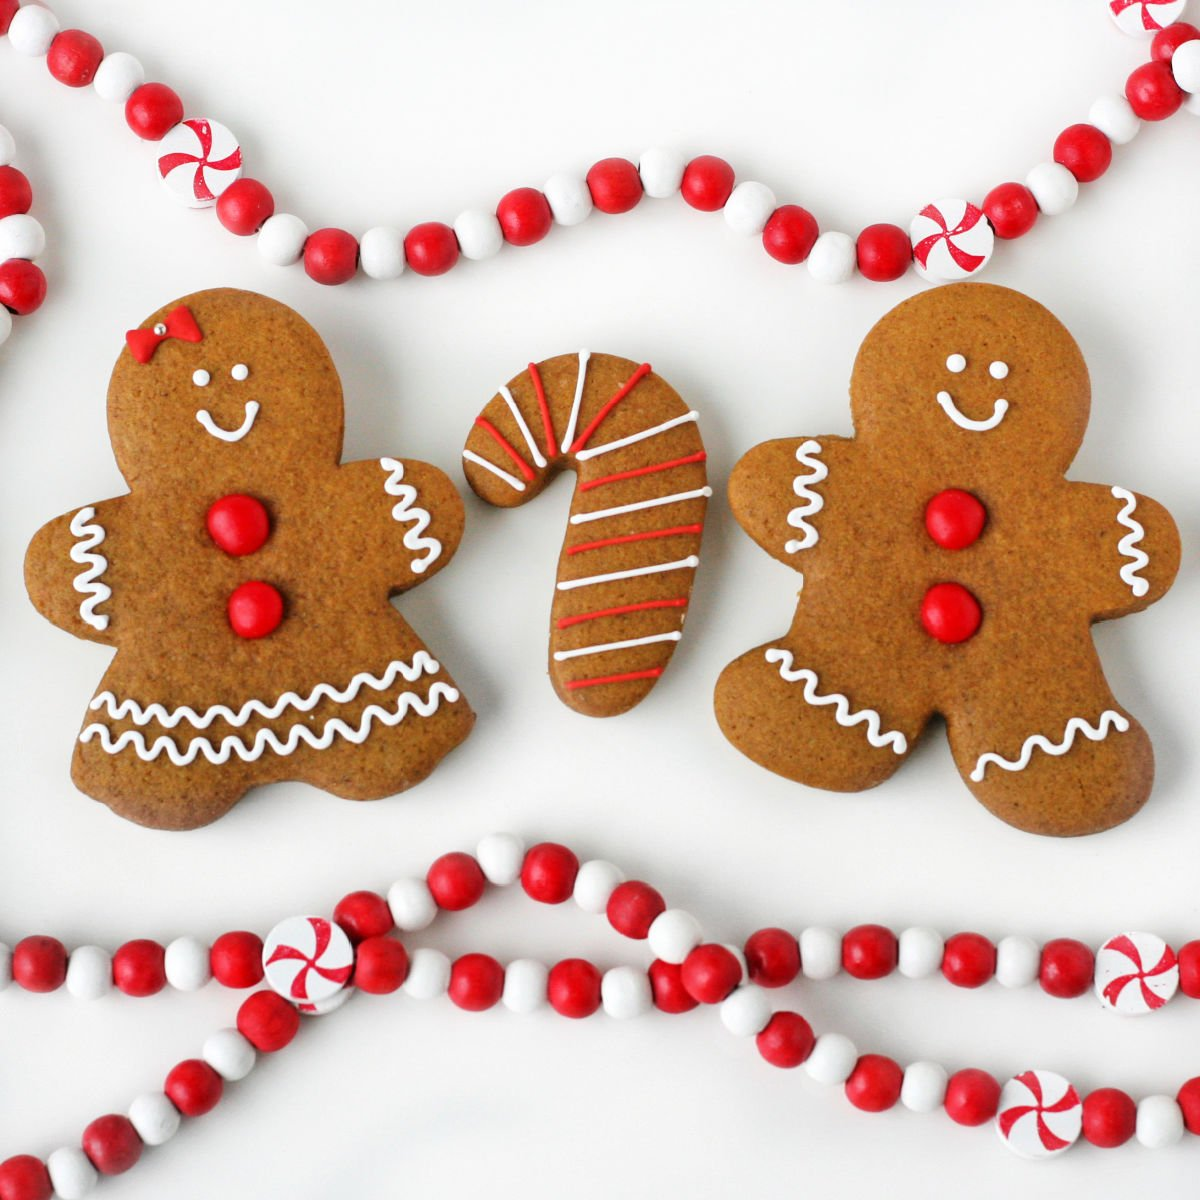 gingerbread cookies decorated with red hots and white frosting sitting on white surface with red and white bead garland